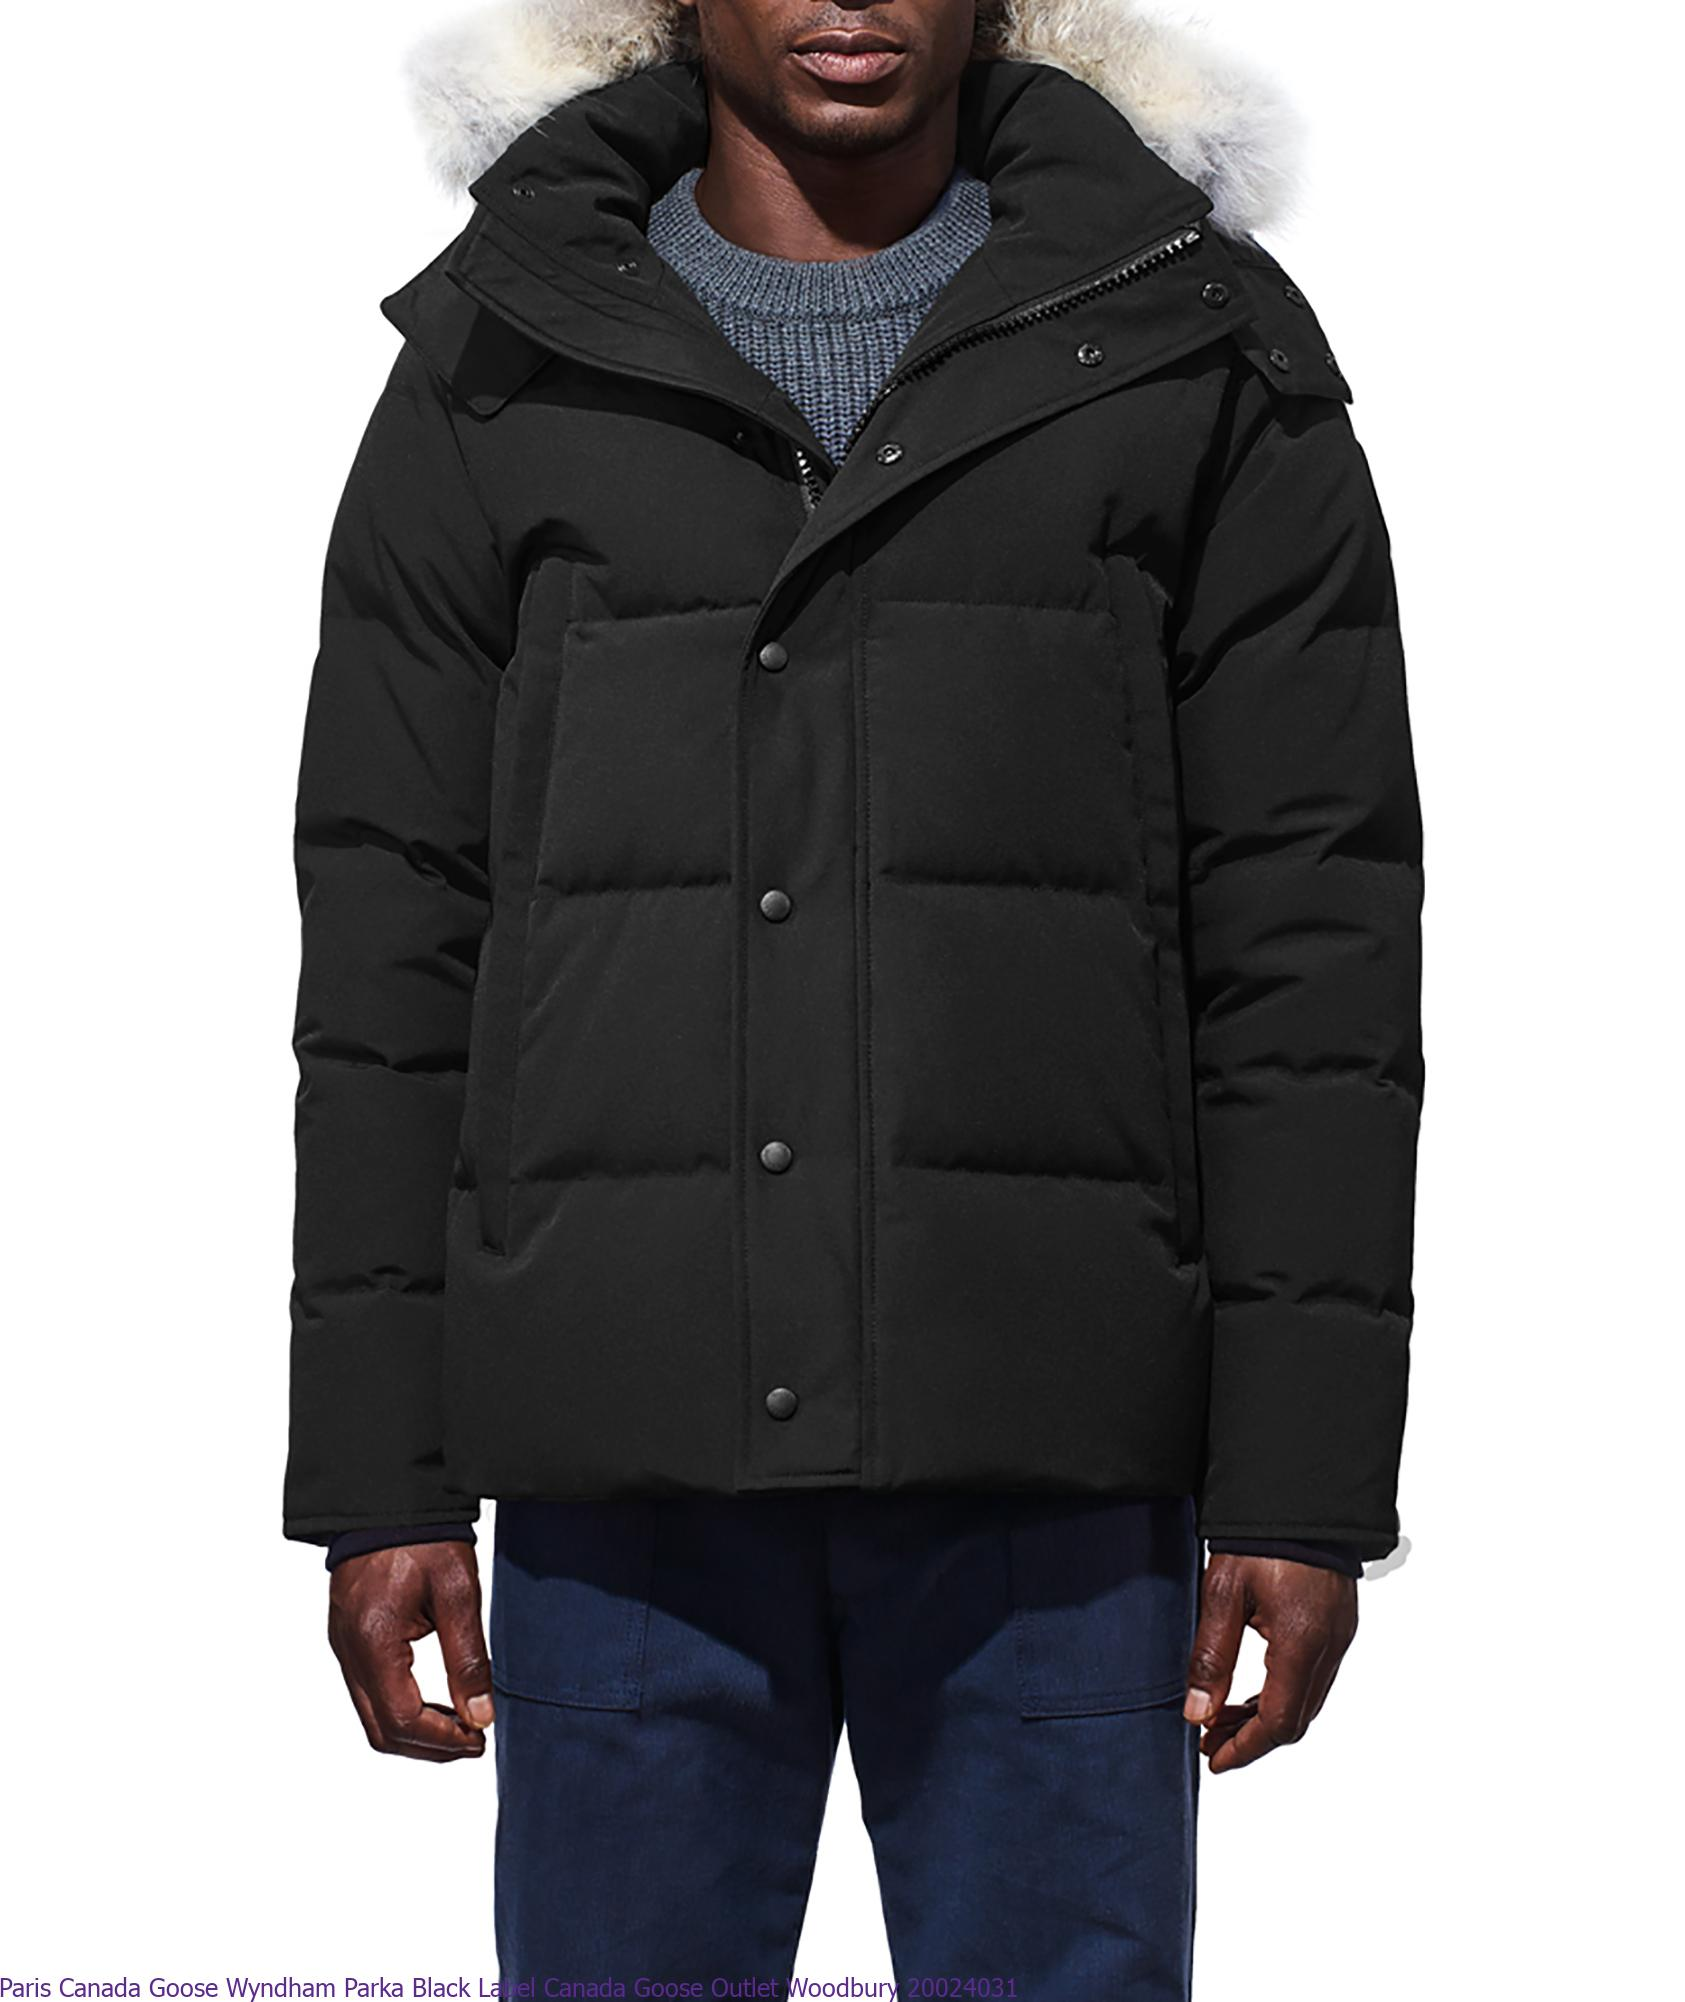 brand new ad0e5 05fc7 Paris Canada Goose Wyndham Parka Black Label Canada Goose Outlet Woodbury  20024031